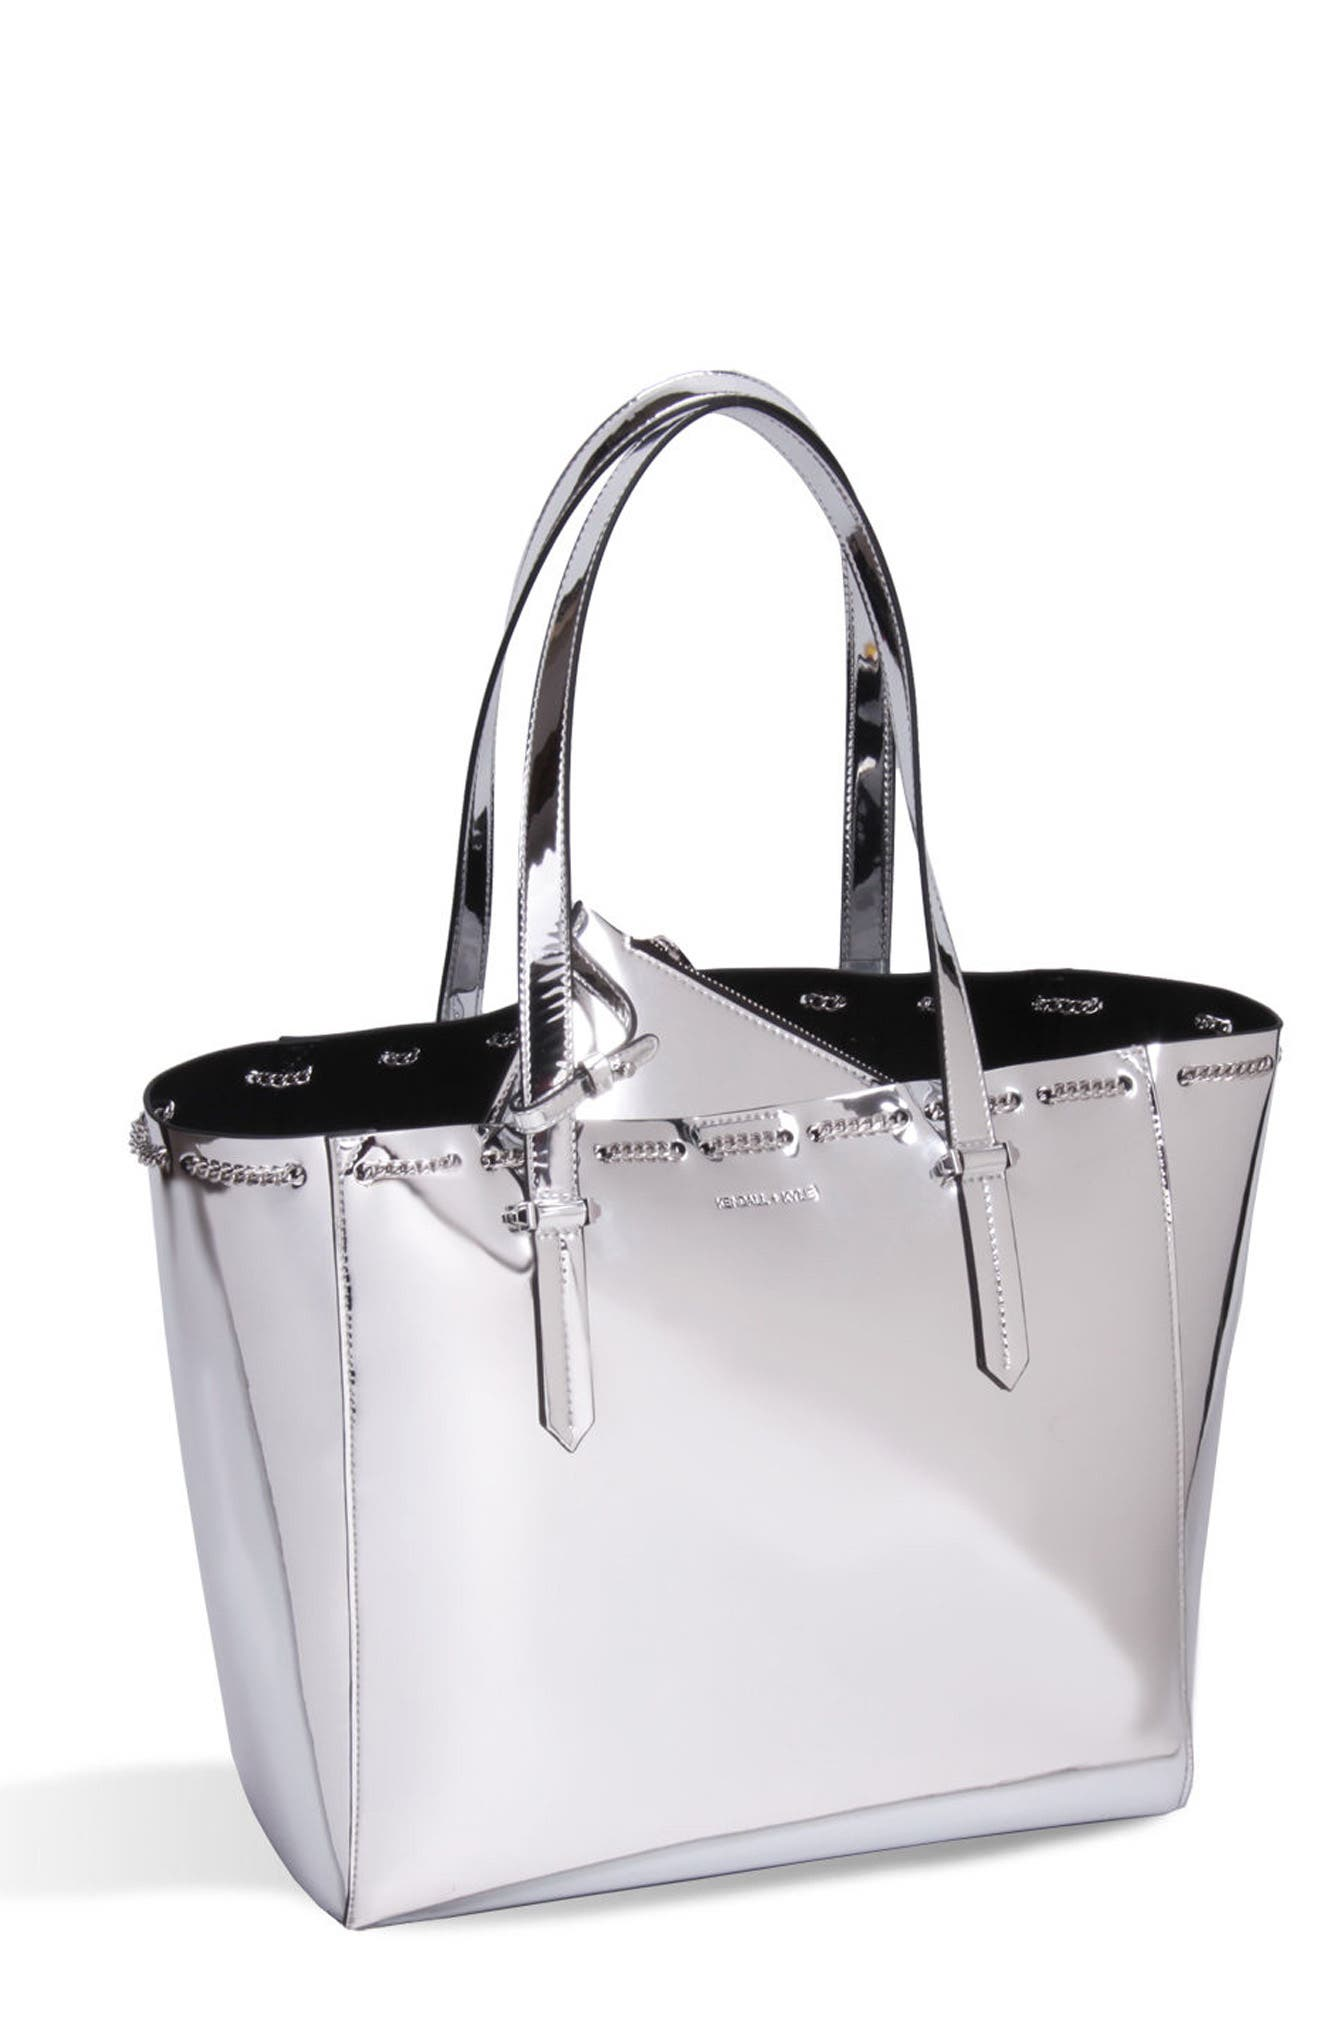 Alternate Image 1 Selected - KENDALL + KYLIE Izzy Chain Faux Leather Tote